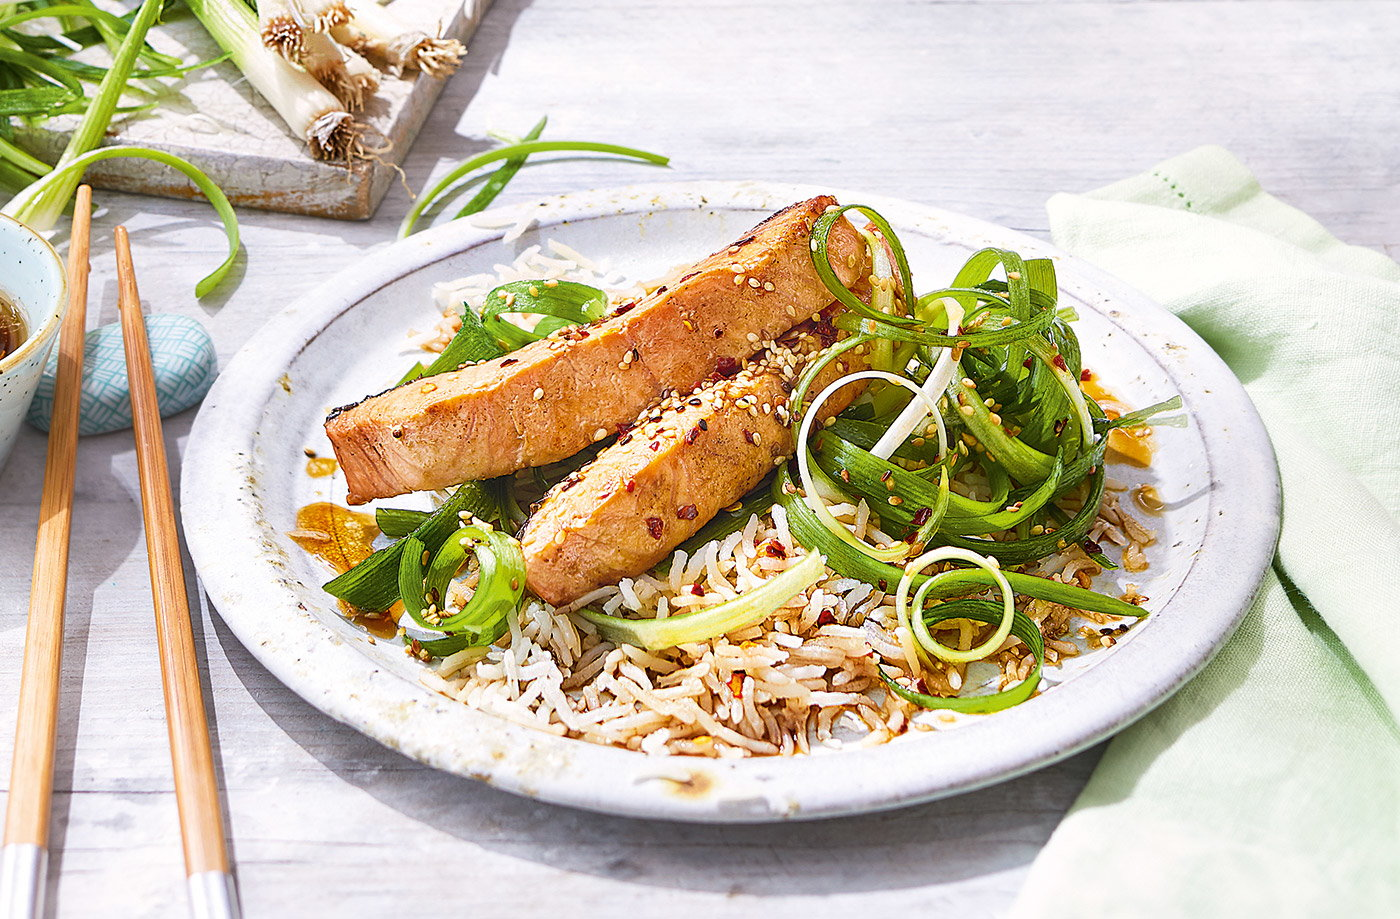 Salmon and spring onion salad recipe